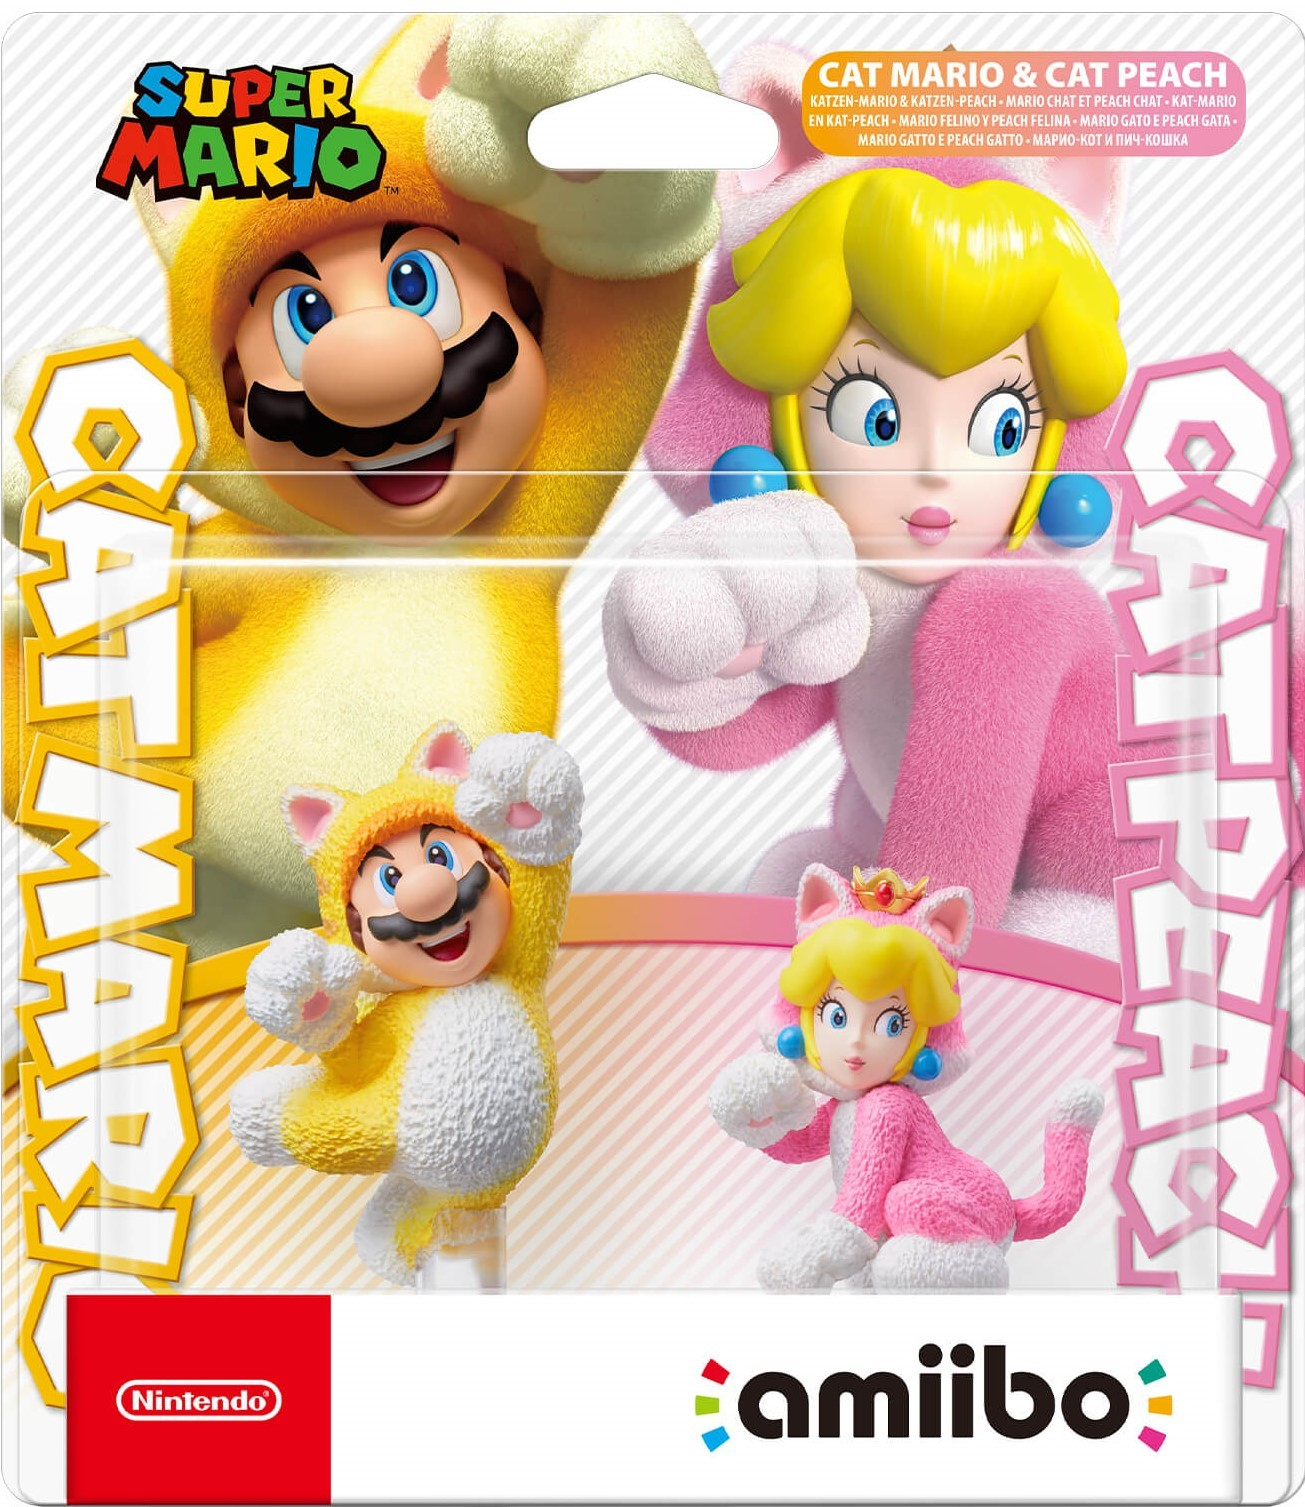 Super Mario Series: Інтерактивна фігурка amiibo - Cat Mario and Cat Peach